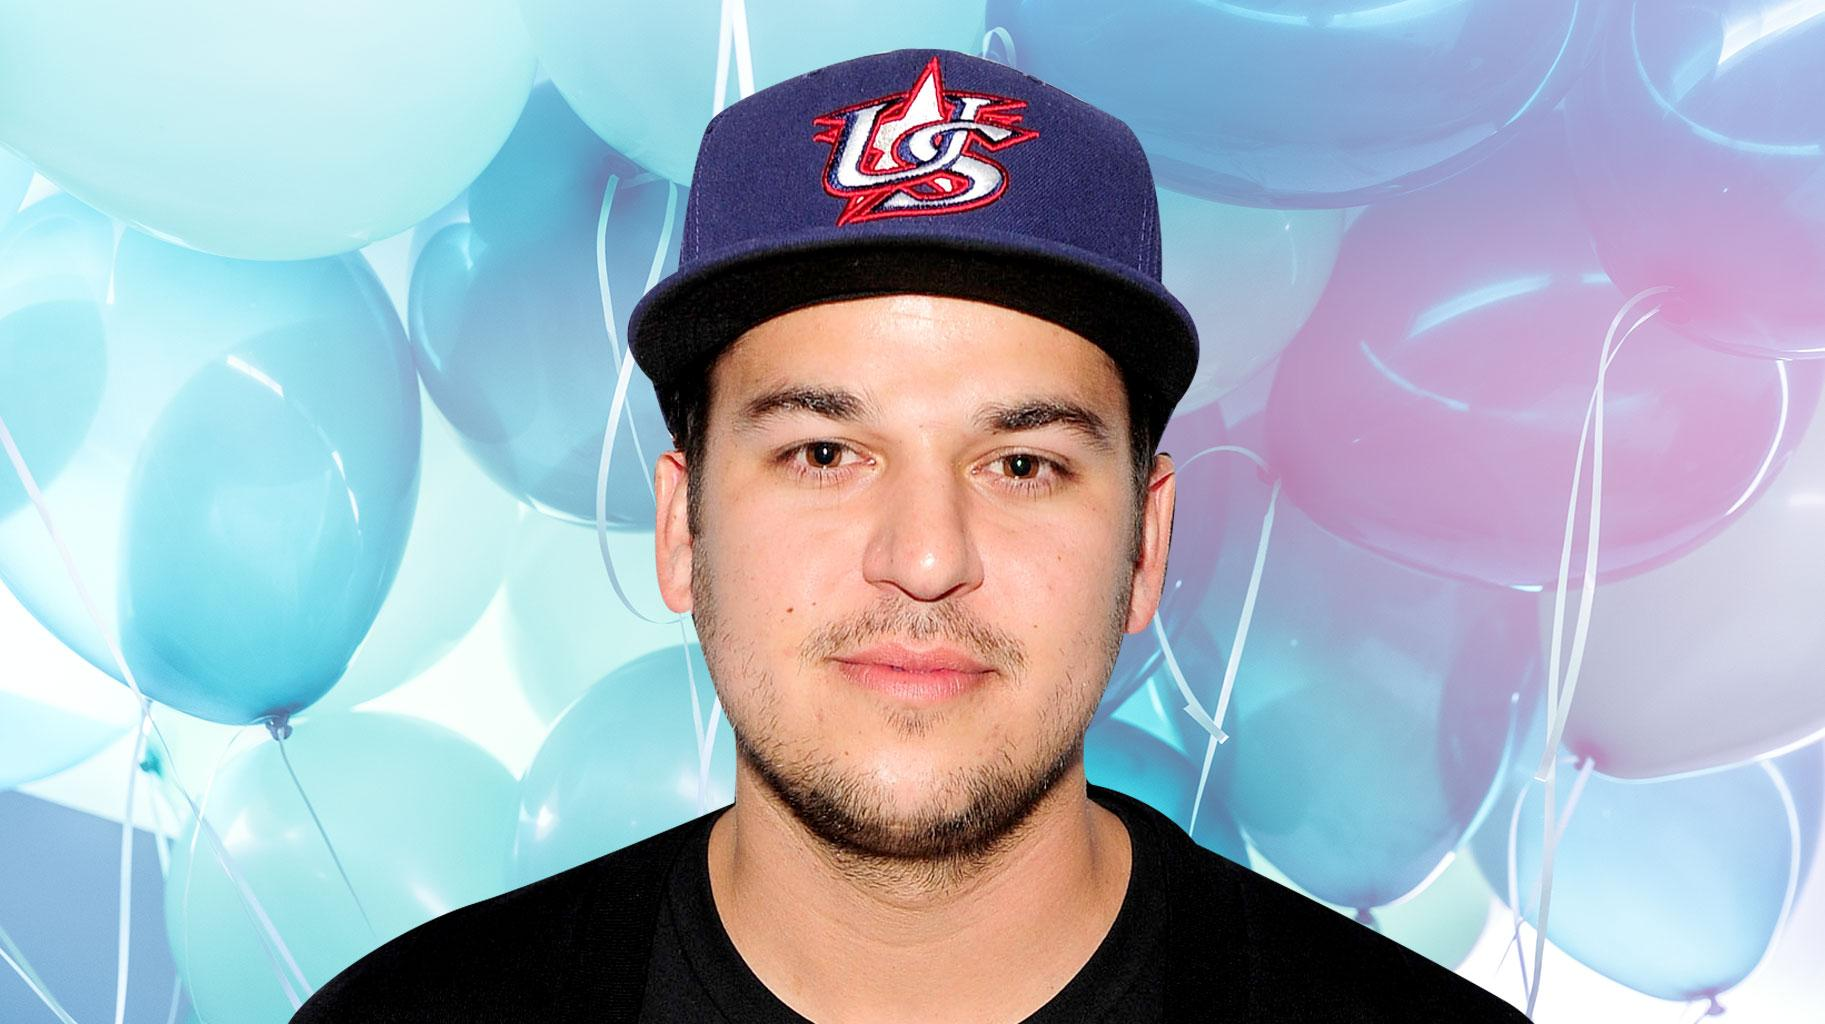 KUWTK: Rob Kardashian Fans Rave About His 'Handsome' Face In New Pic As He Announces He's 'Back' After Weight Loss!